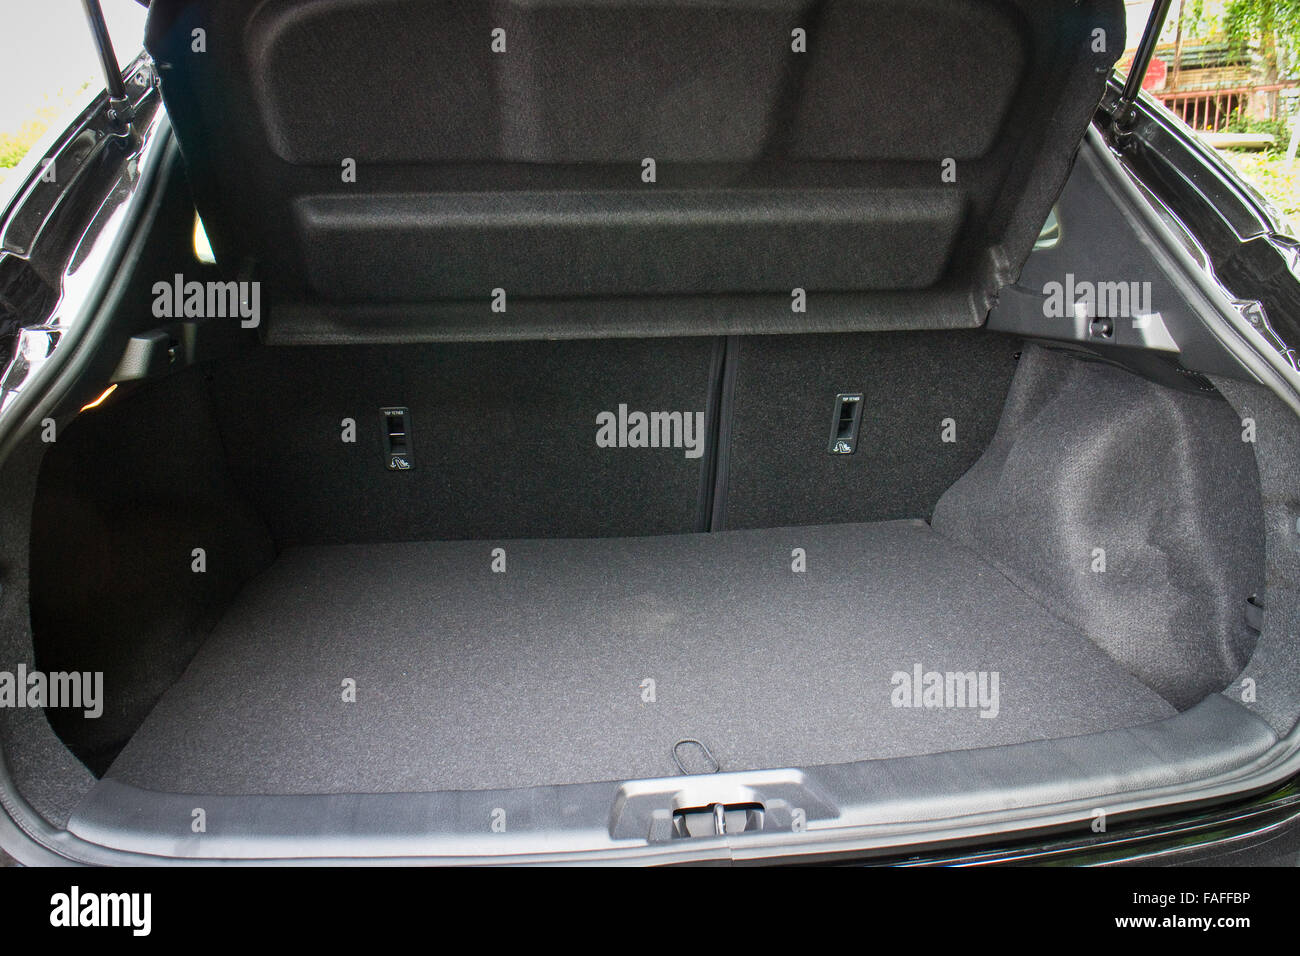 Hong Kong, China June 5, 2014 : Nissan Qashqai trunk  on June 5 2014 in Hong Kong. - Stock Image